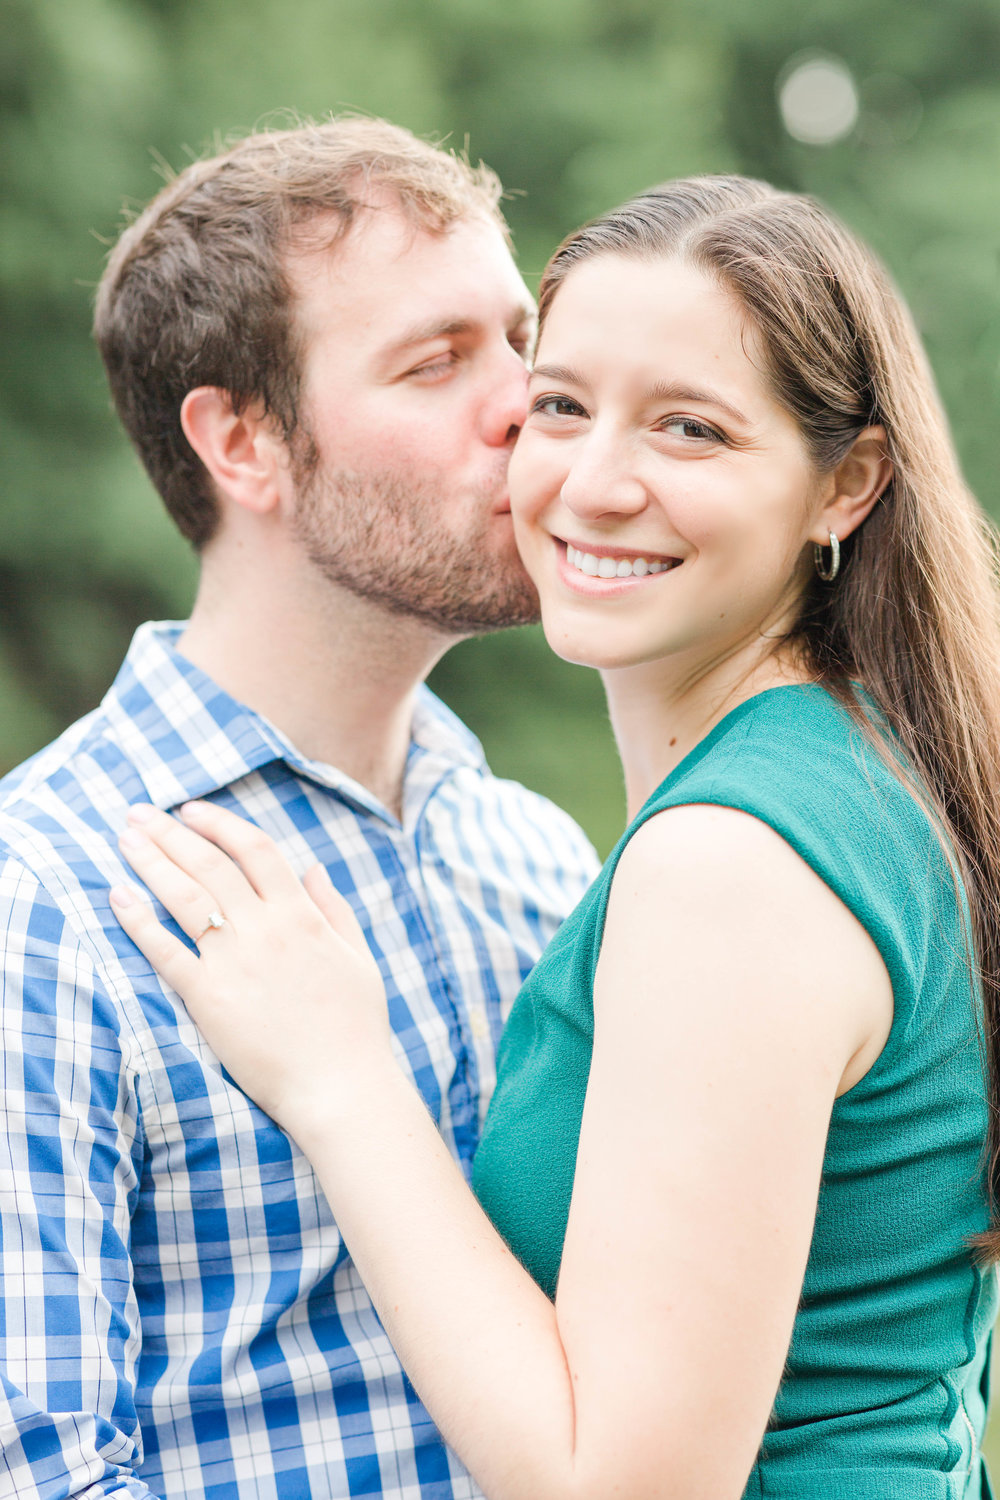 Katie_Pete_Engagement-48.JPG